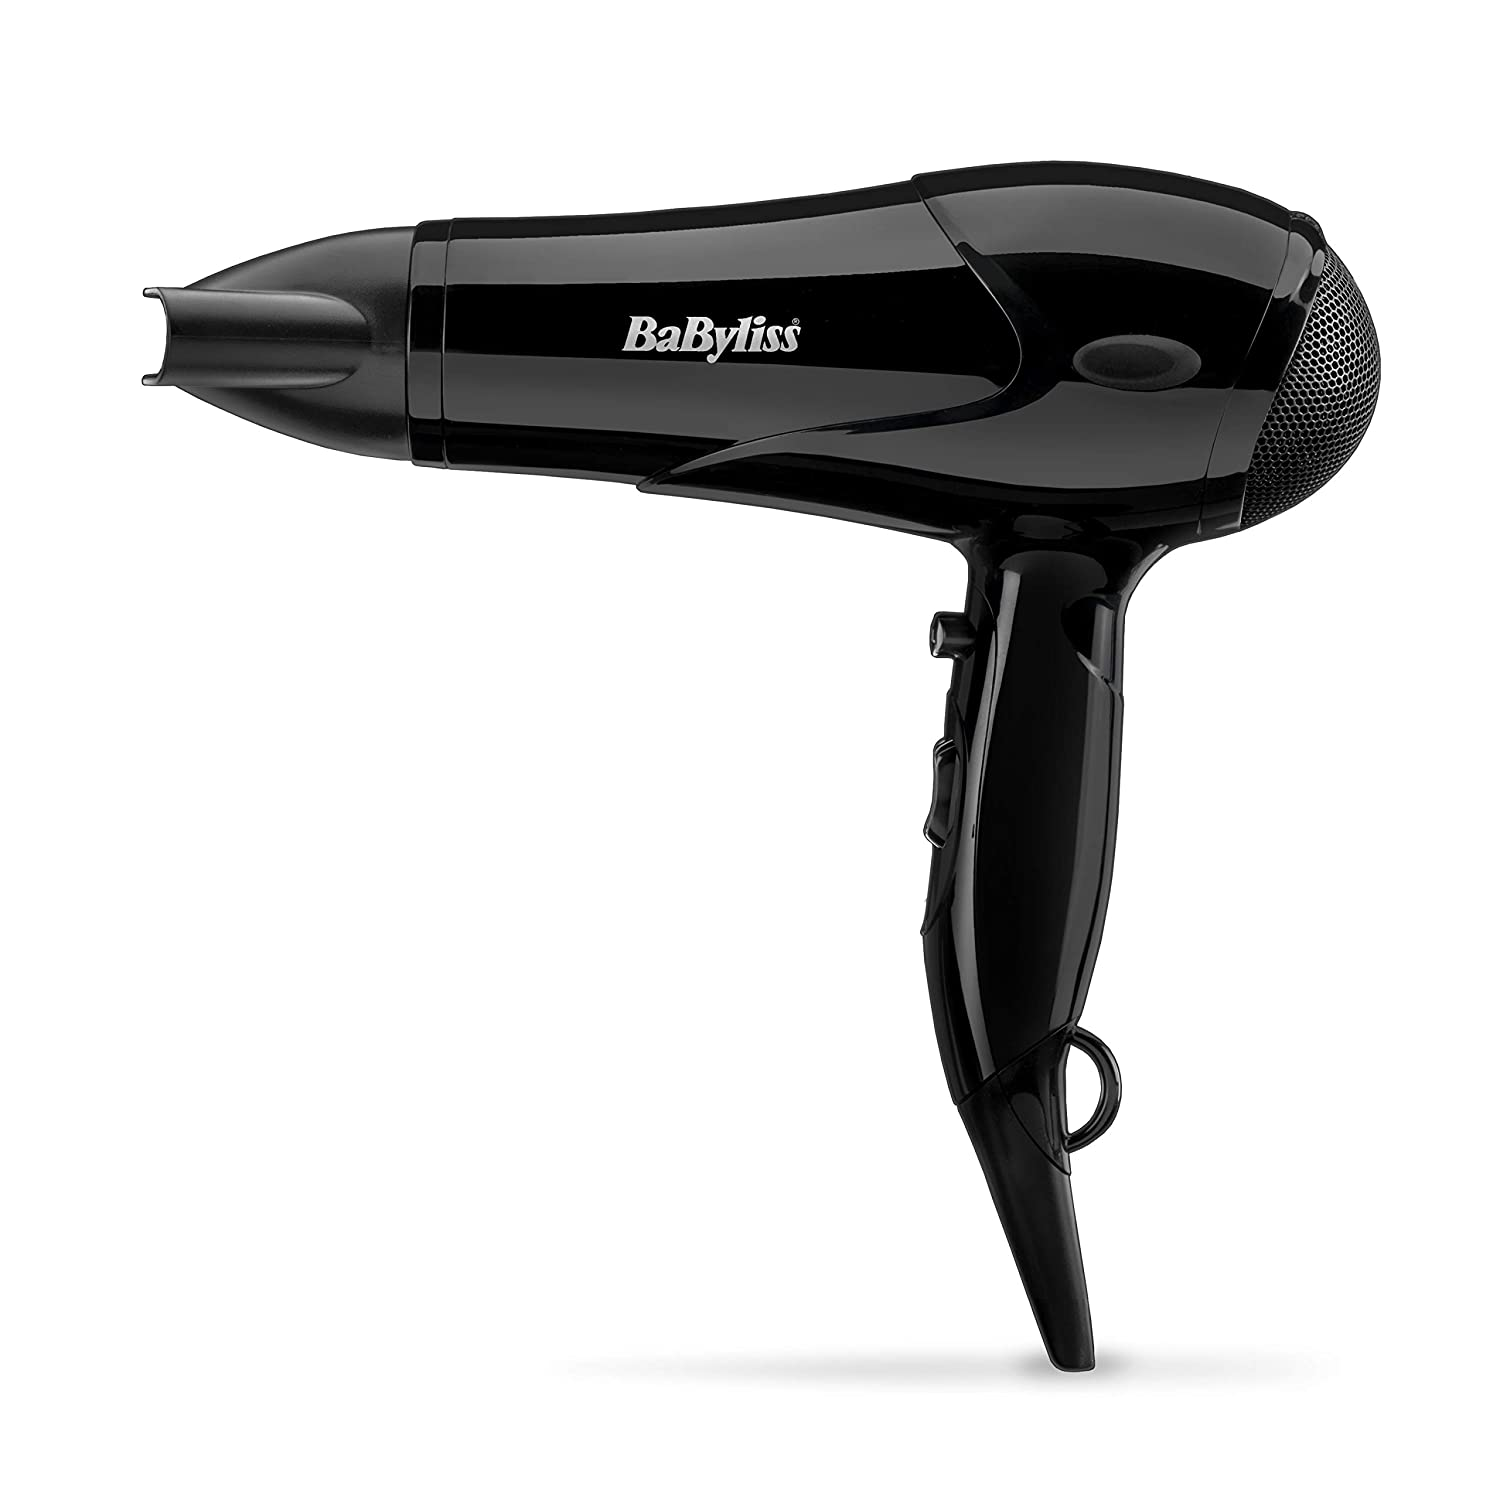 BaByliss 2000 W Power Hair Dryer The Conair Group 5245U